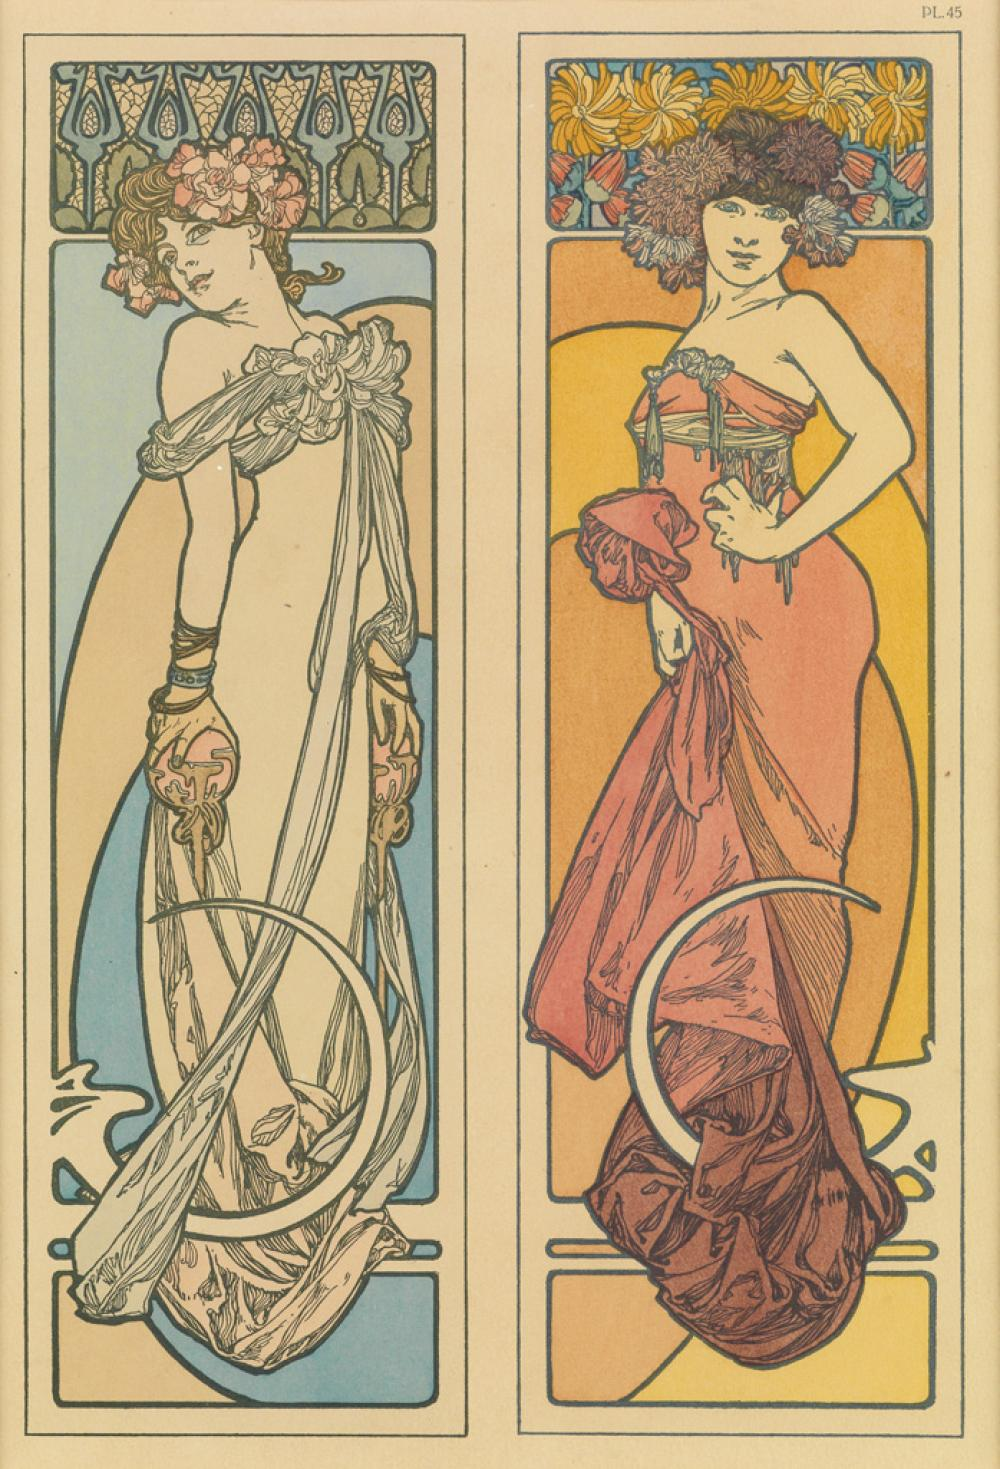 ALPHONSE MUCHA (1860-1939). DOCUMENTS DÉCORATIFS. Group of 10 plates. 1902. Sizes vary. [Emile Levy, Paris.]